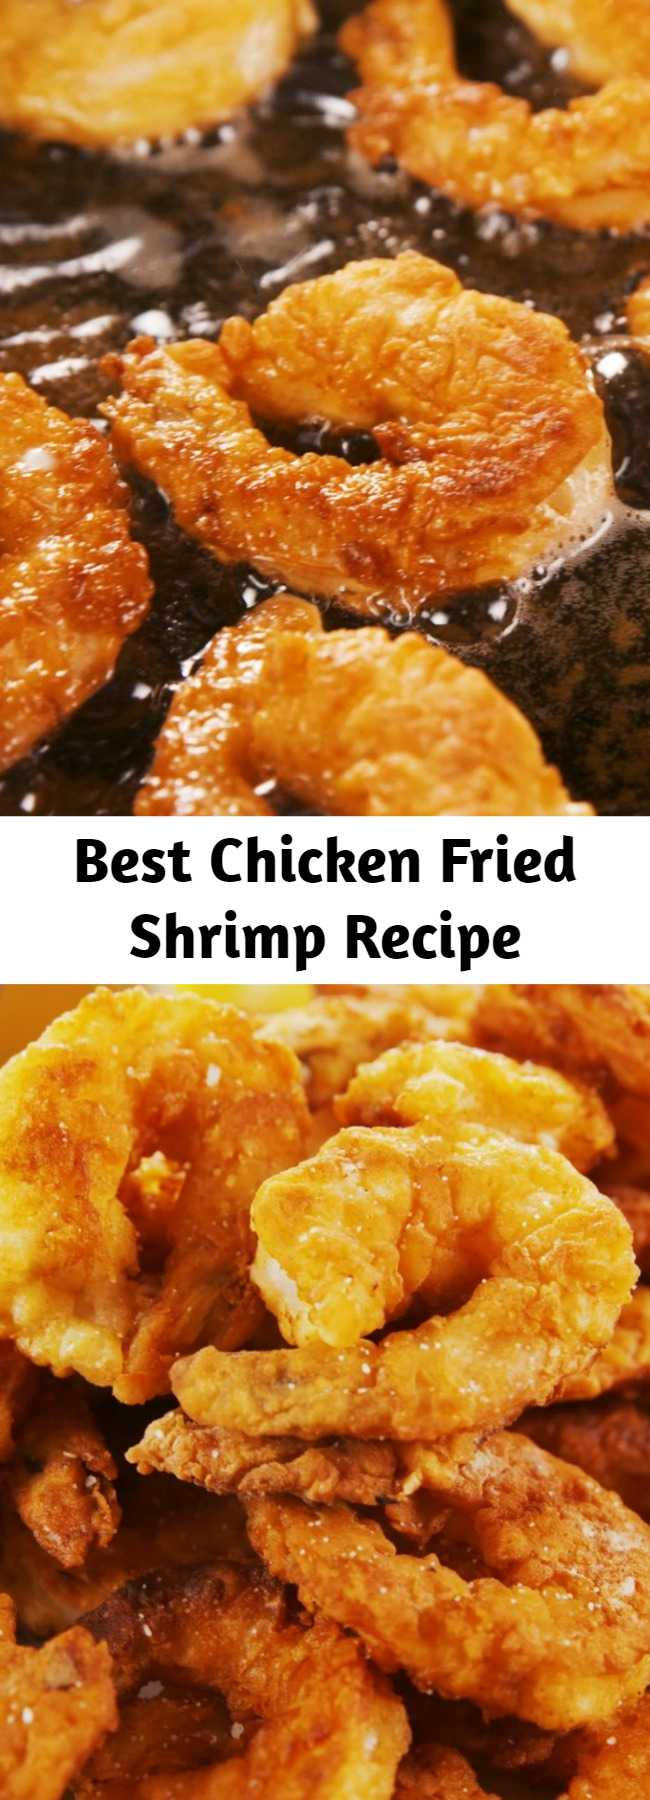 Best Chicken Fried Shrimp Recipe - If you can make chicken fried steak, you can make chicken fried anything — including shrimp. Though it's certainly not healthy, this won't leave you wanting to take a nap all day afterwards as steak would.